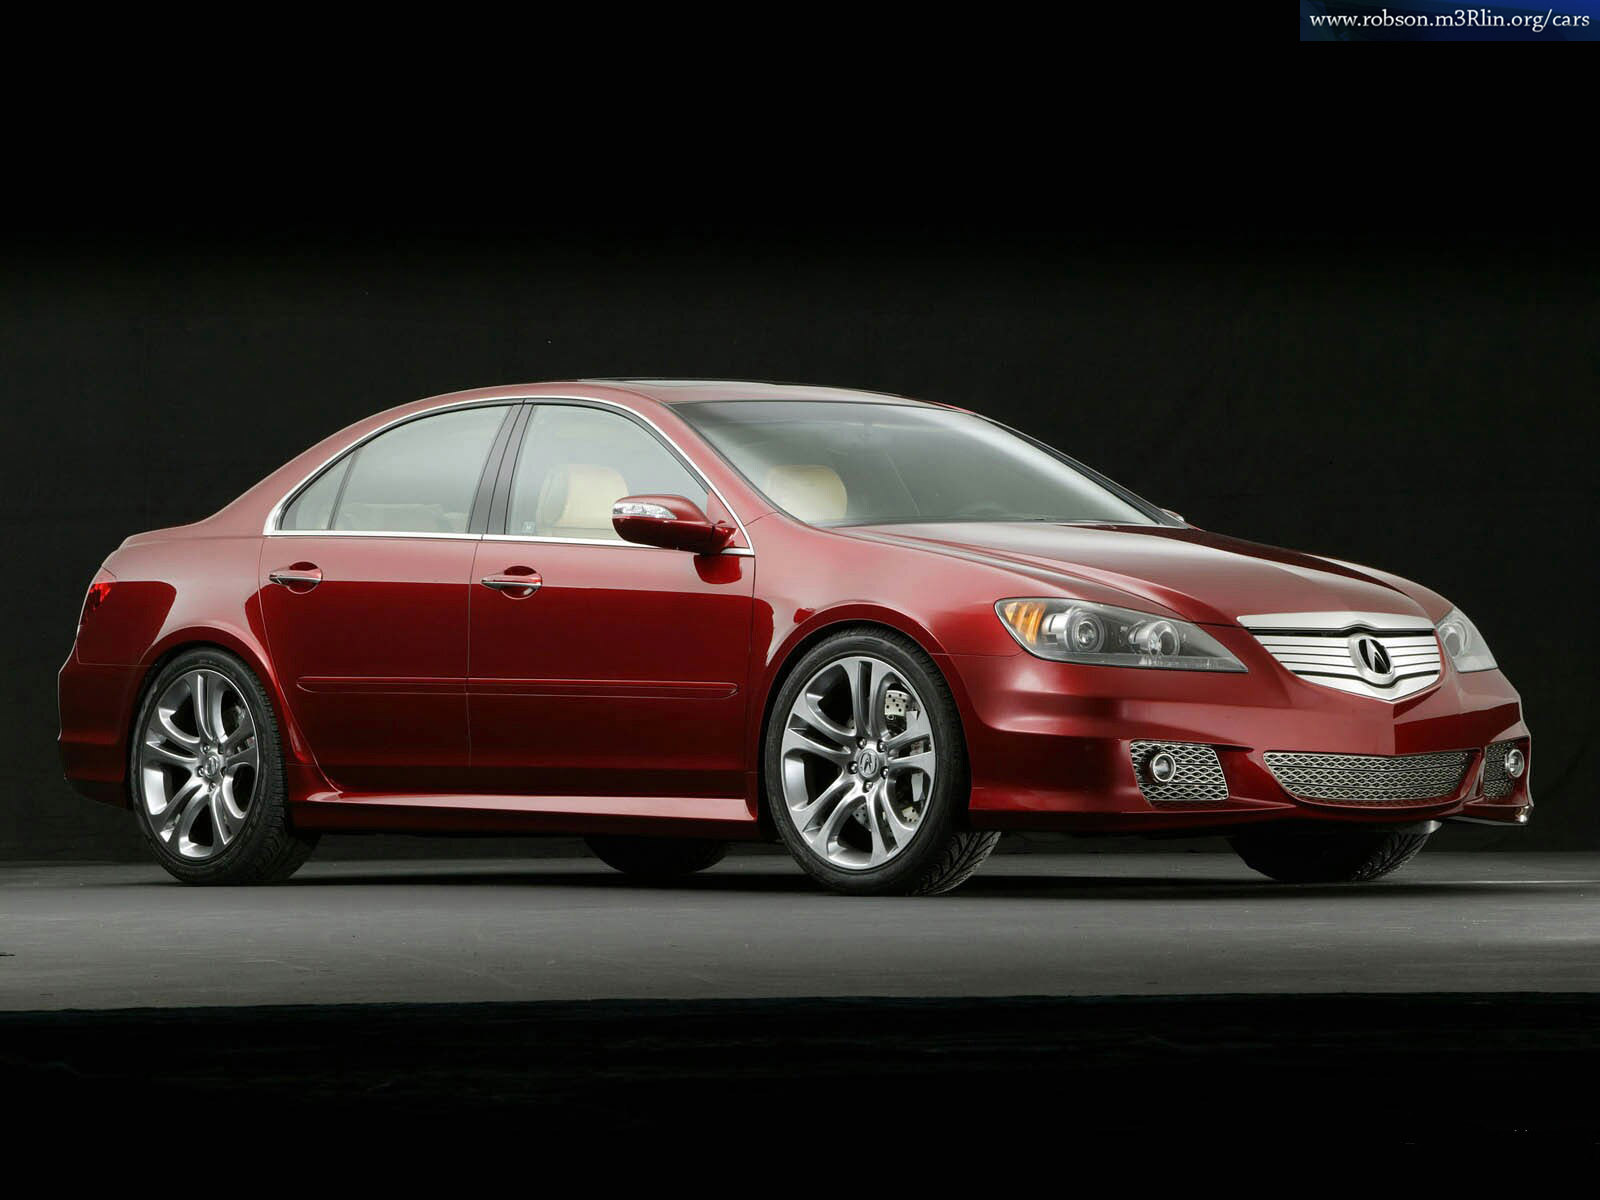 cars s rl at of info awesome acura used image inspirational rlsedan specs beautiful modification